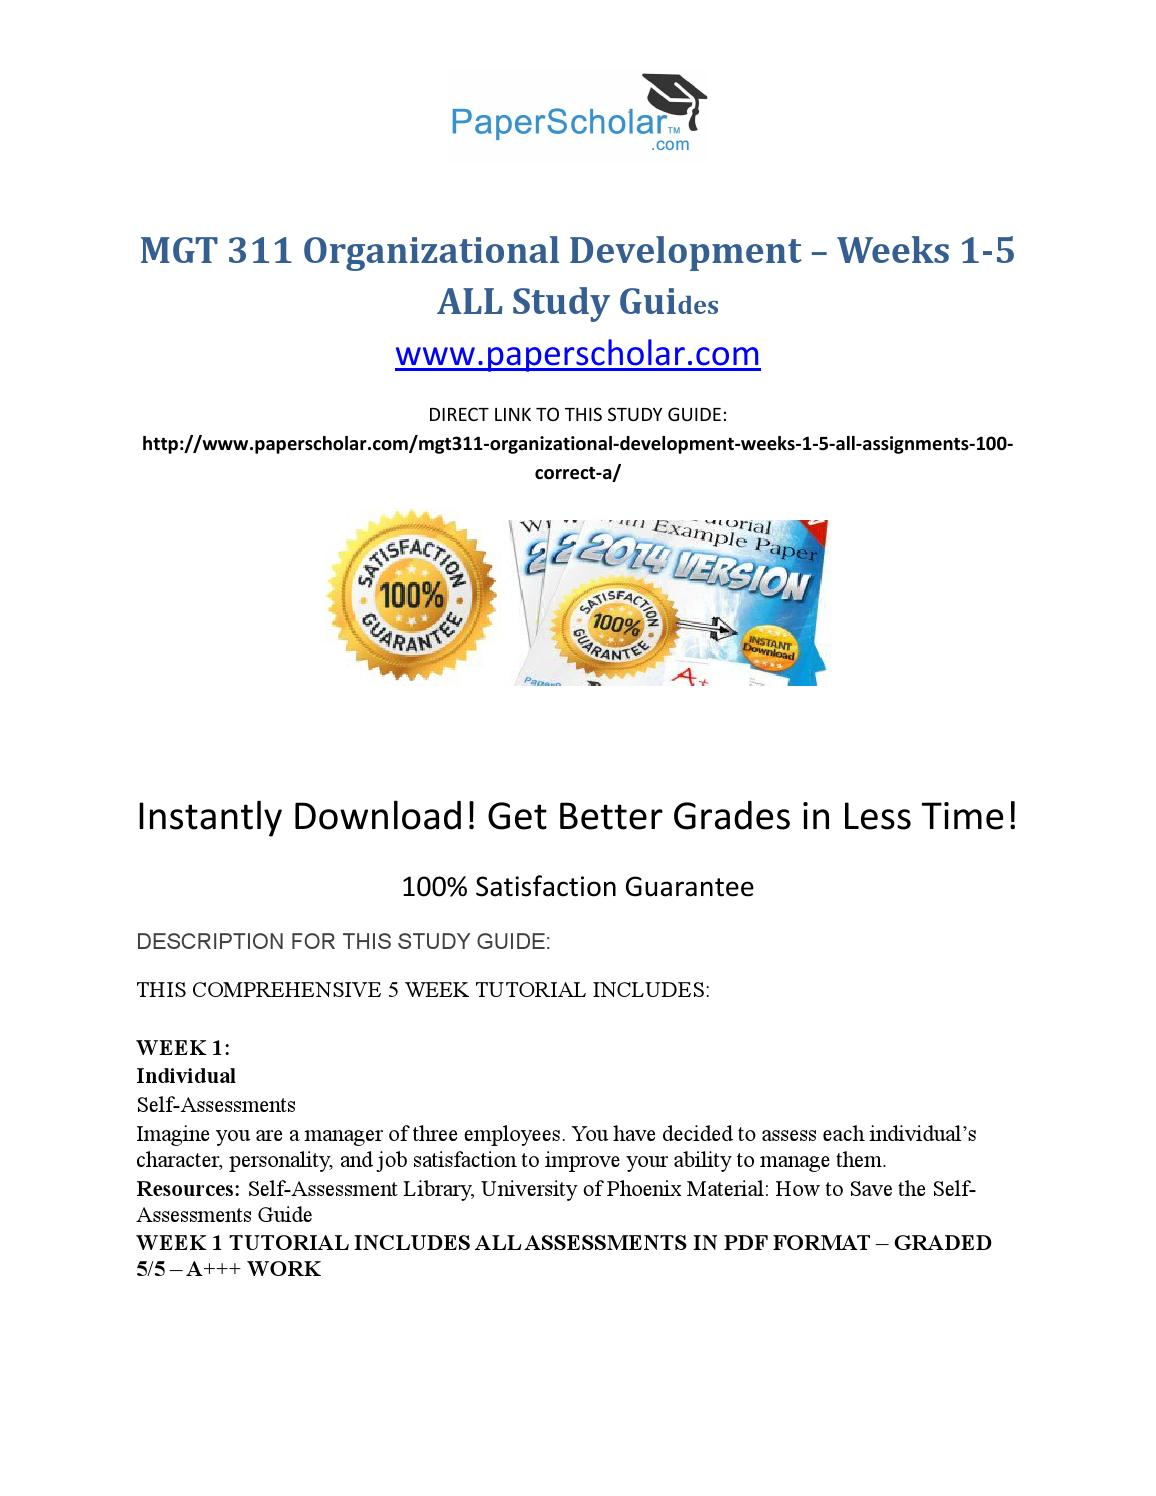 mgt 311 organizational development Homework minutes username forgot password password create account search search by tutorial / question create account ask a question blog faq ask mike question offered price.